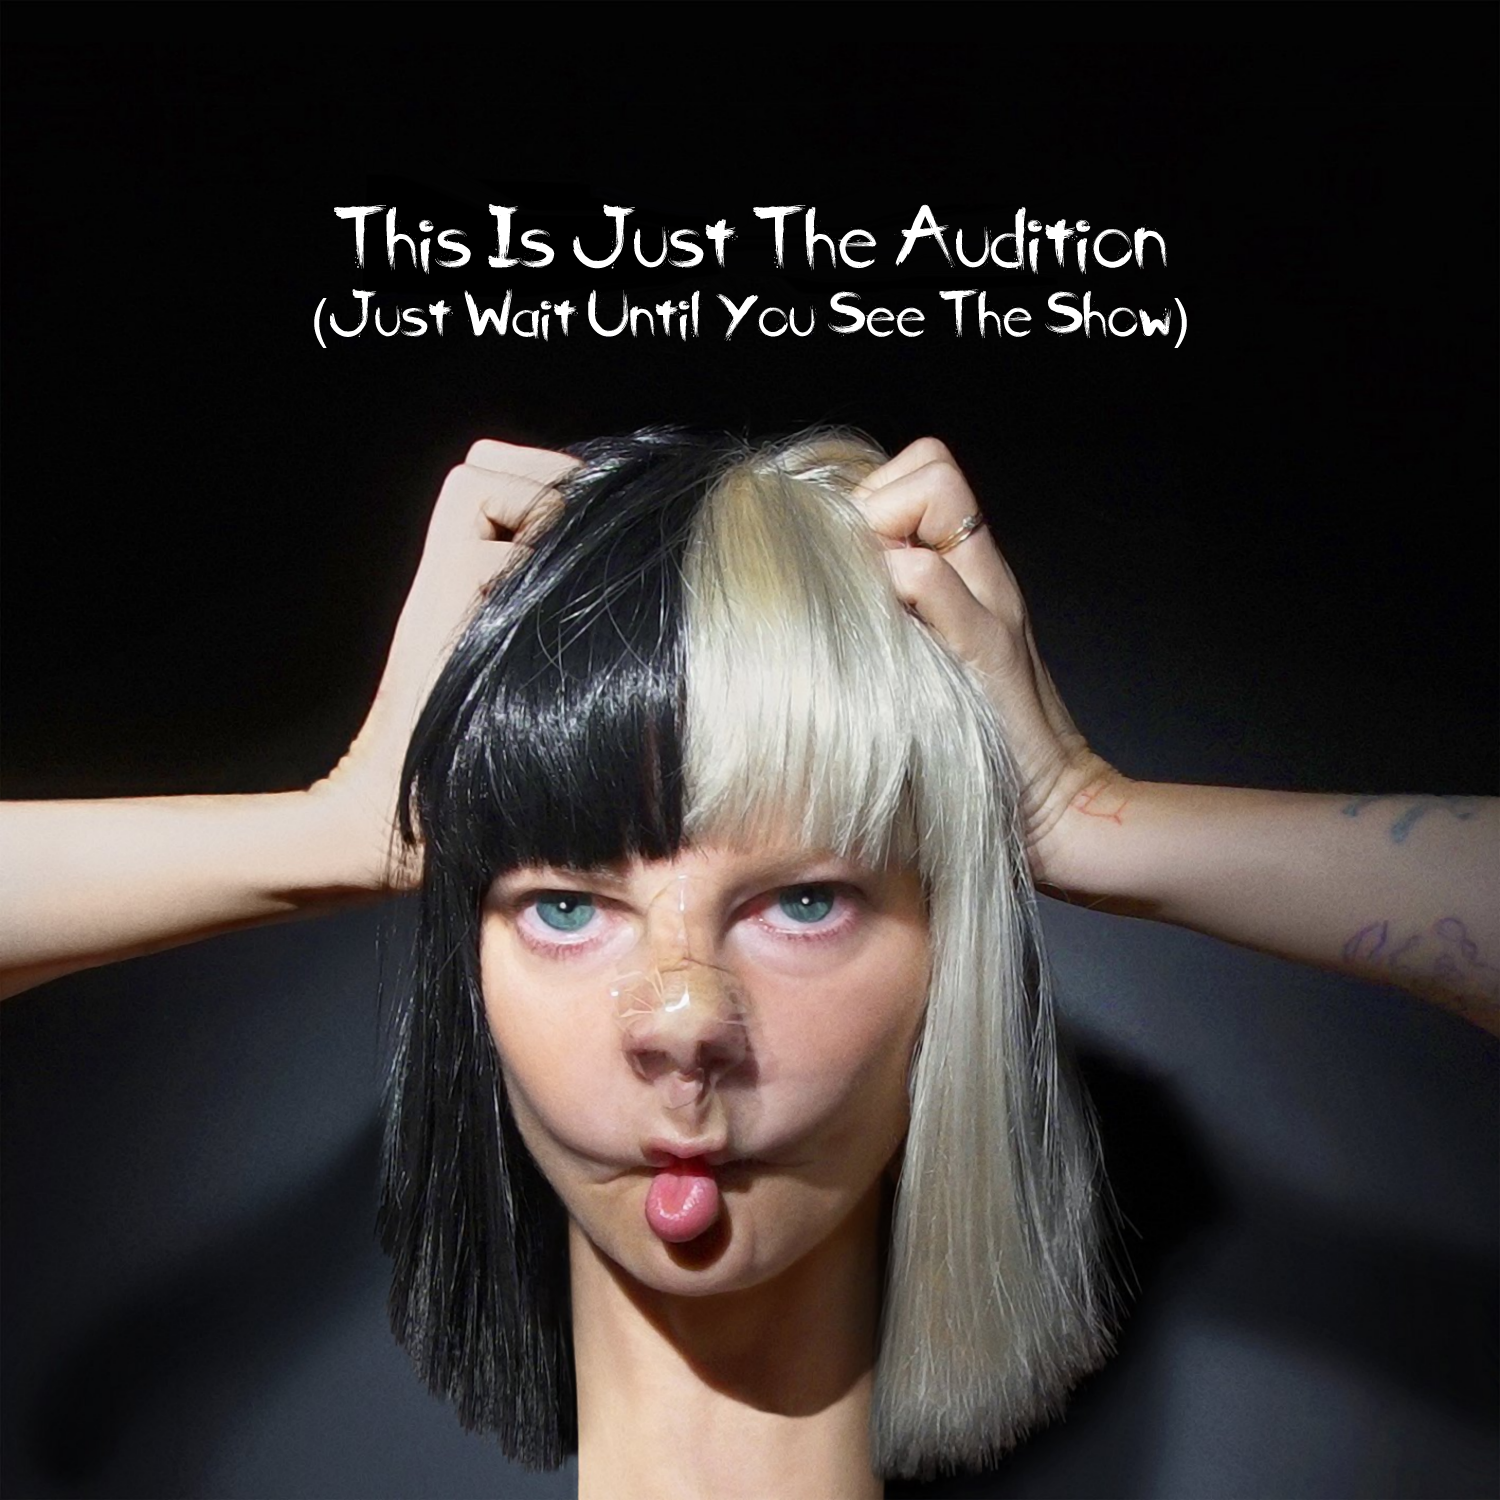 Album cover parody of This Is Acting by Sia